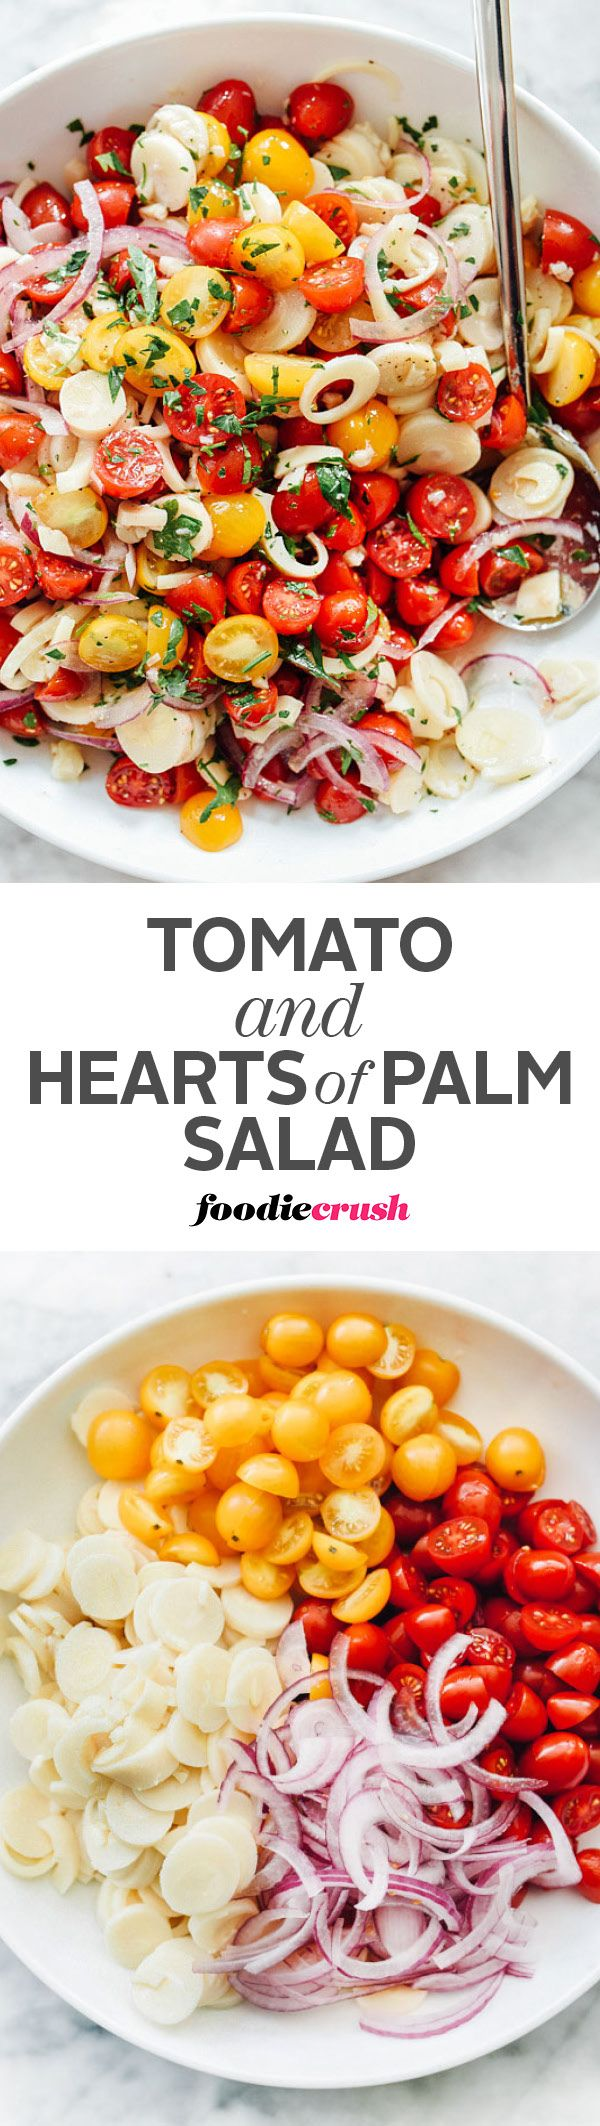 This tomato and hearts of palm salad takes just 10 minutes with a sharp knife for a little slicing and chopping to pull together and is the perfect addition to any potluck barbecue   http://foodiecrush.com